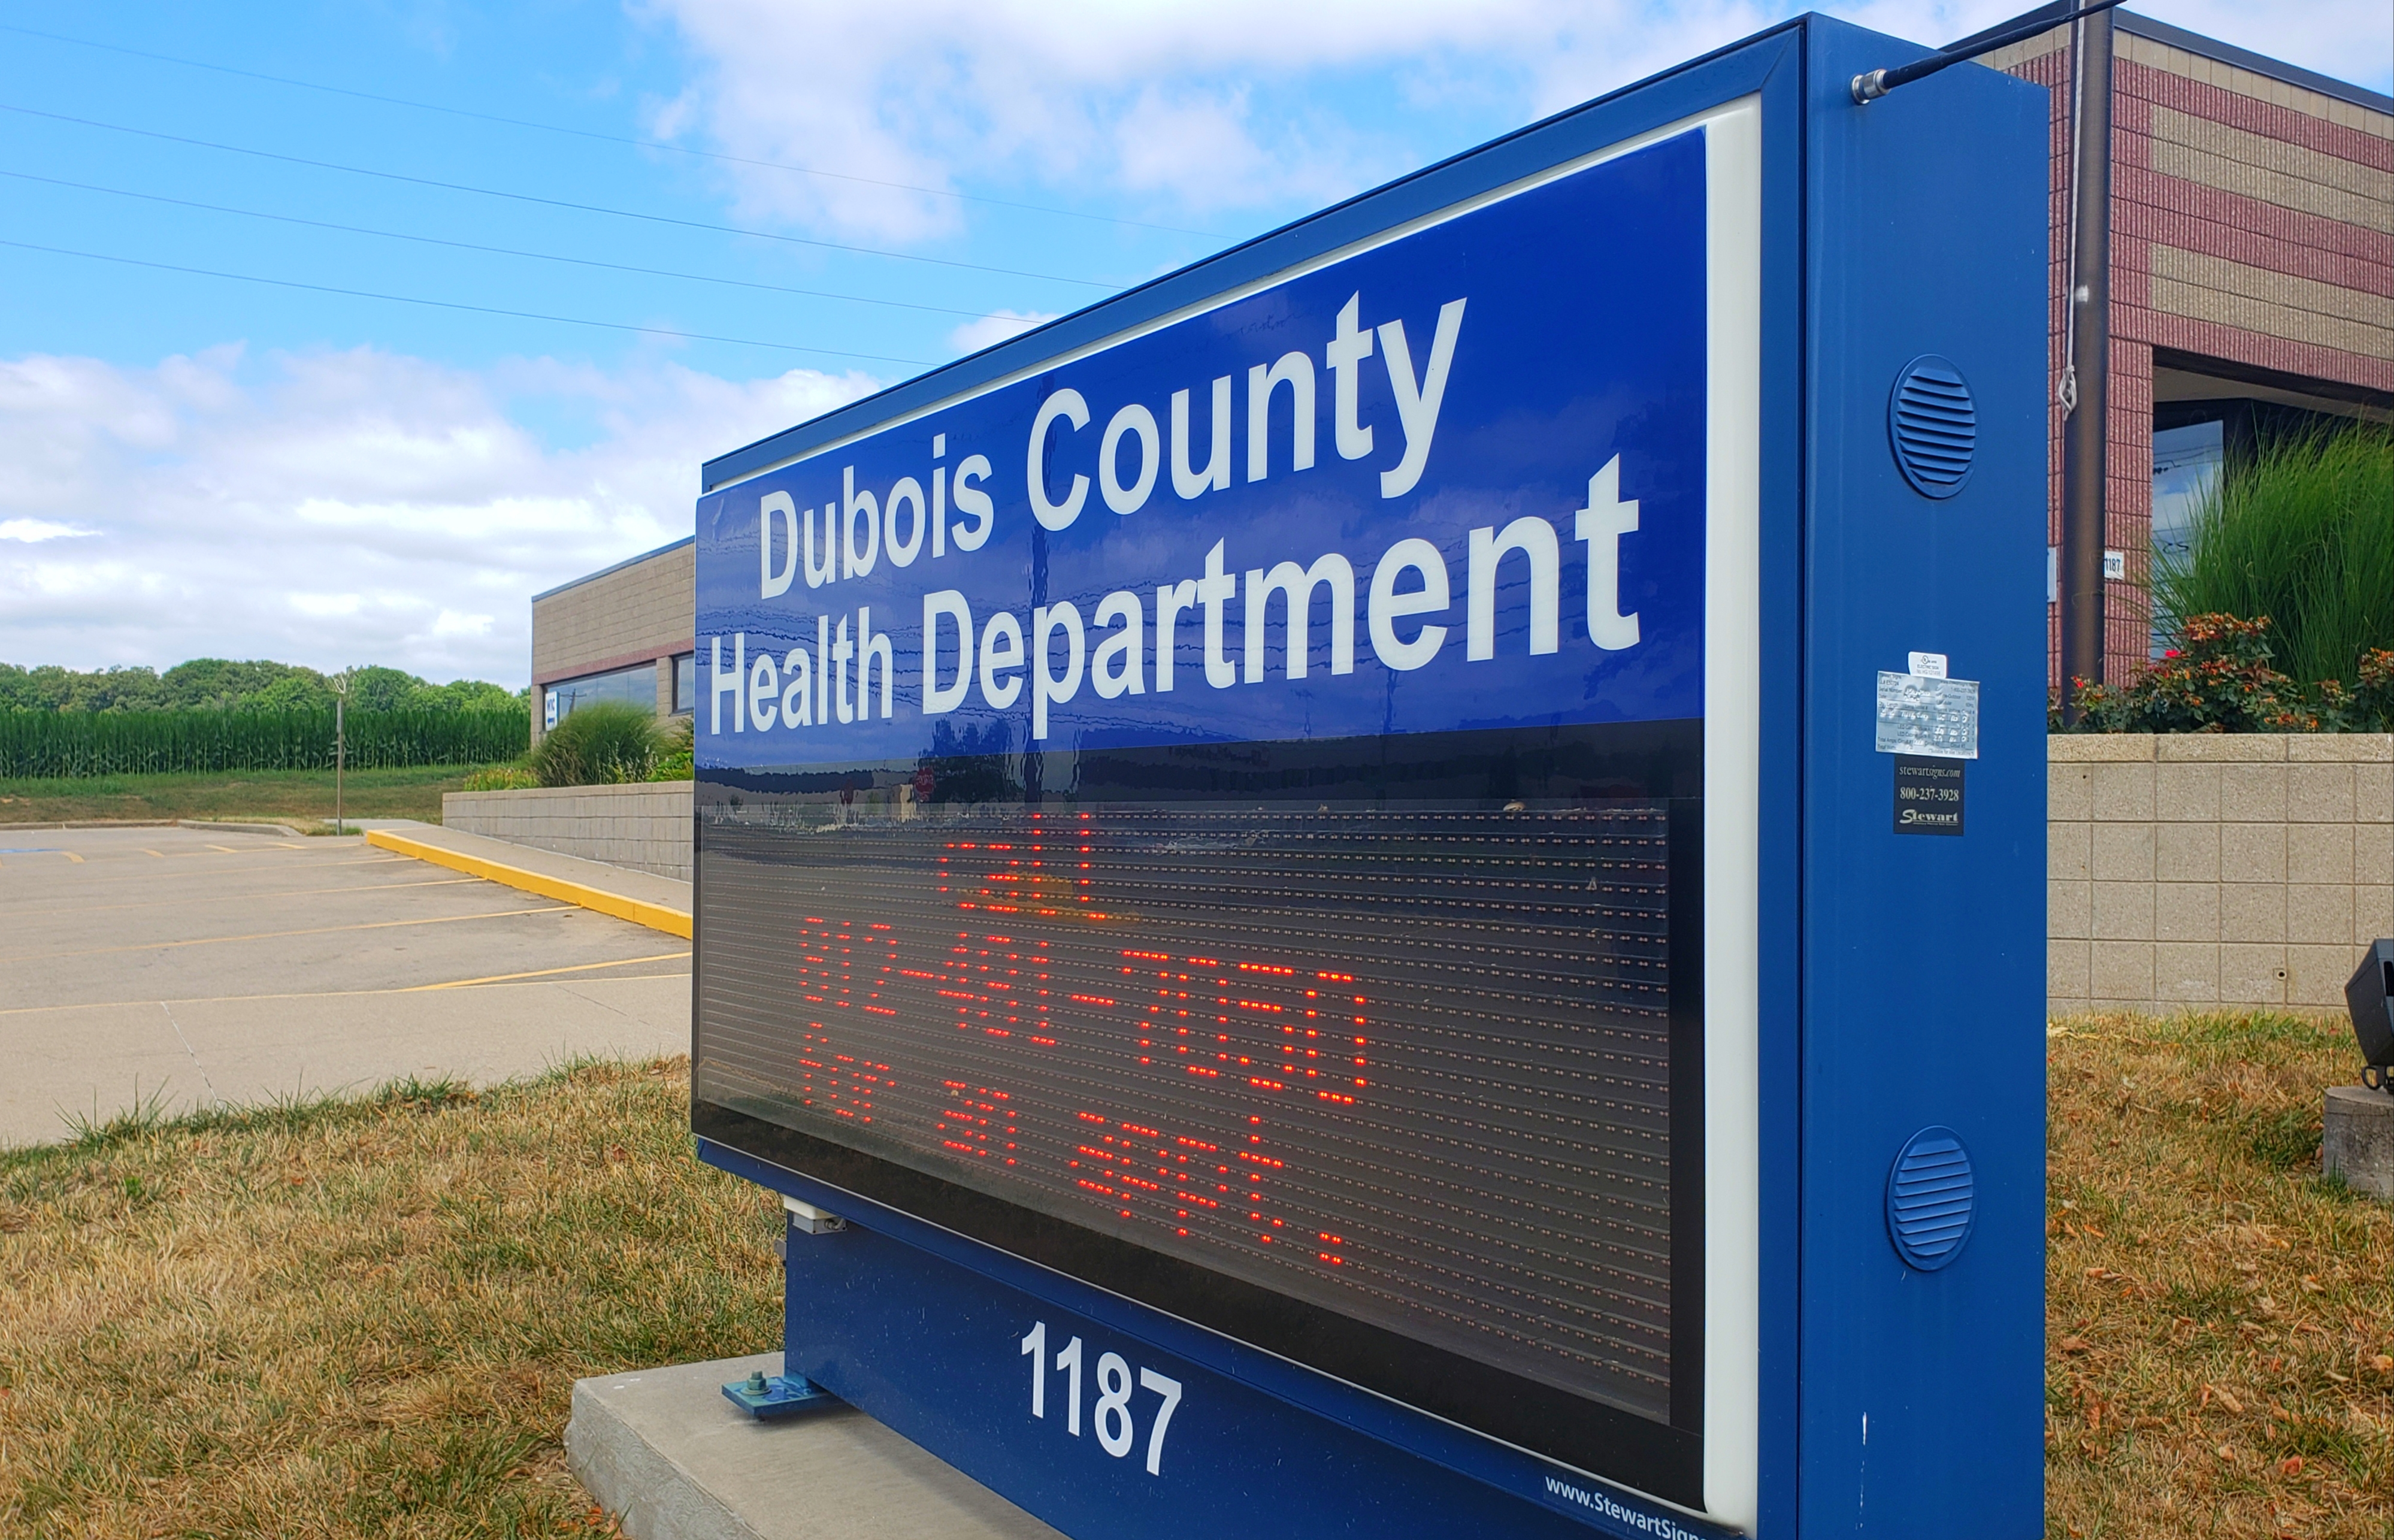 11 New COVID-19 Cases Reported in Dubois County Tuesday